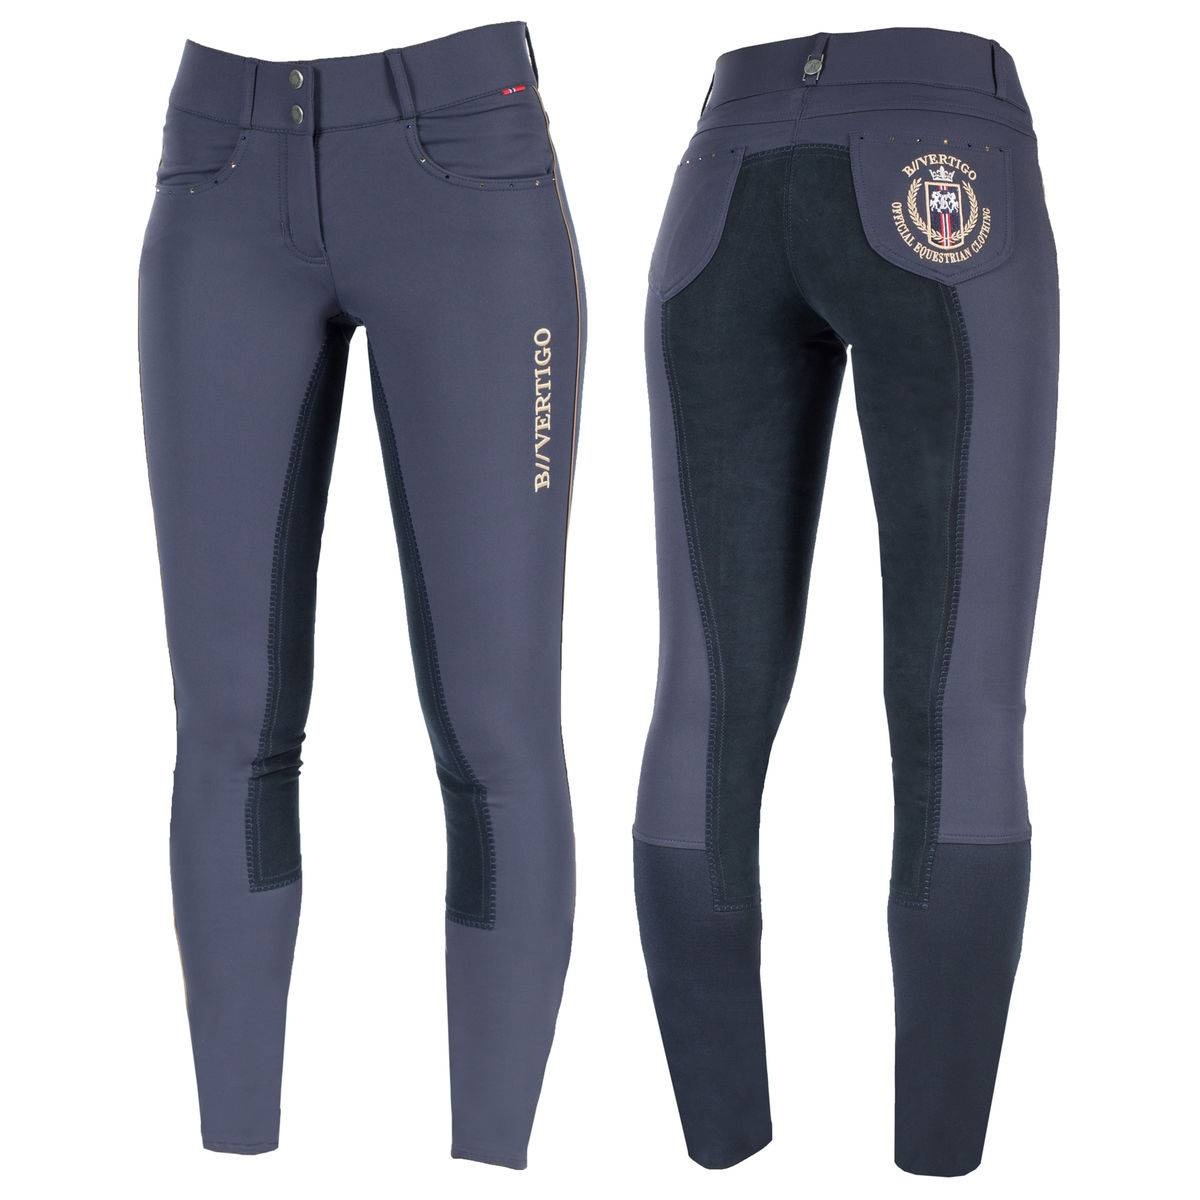 B Vertigo Kimberley Full Seat Breeches - Ladies